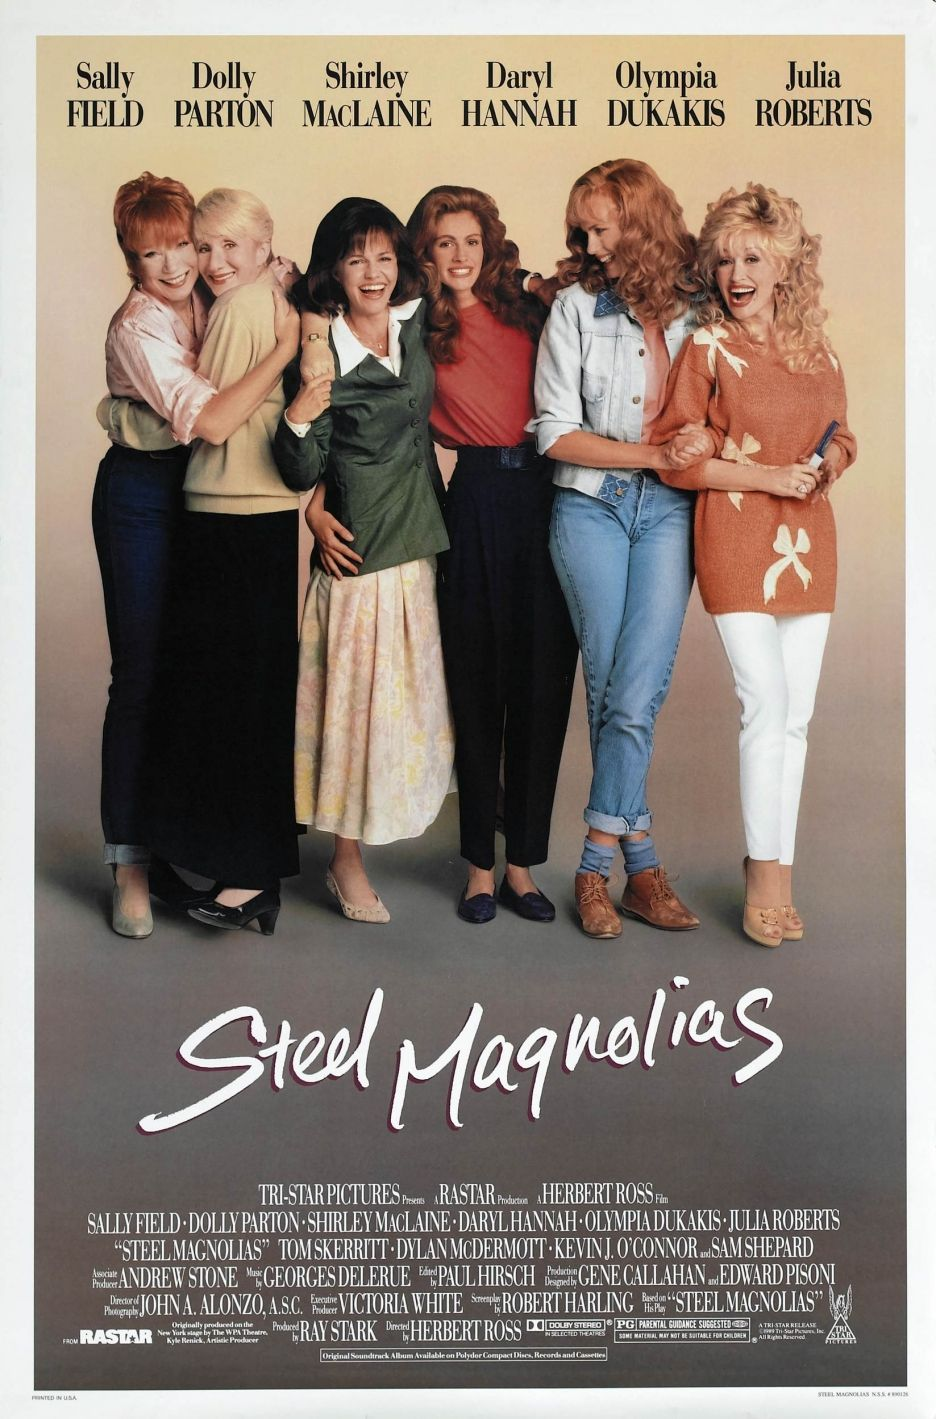 Steel Magnolias classic 80s with full ensemble cast. Julia Roberts, Sally Field via Shirley MacLaine to Dolly Parton